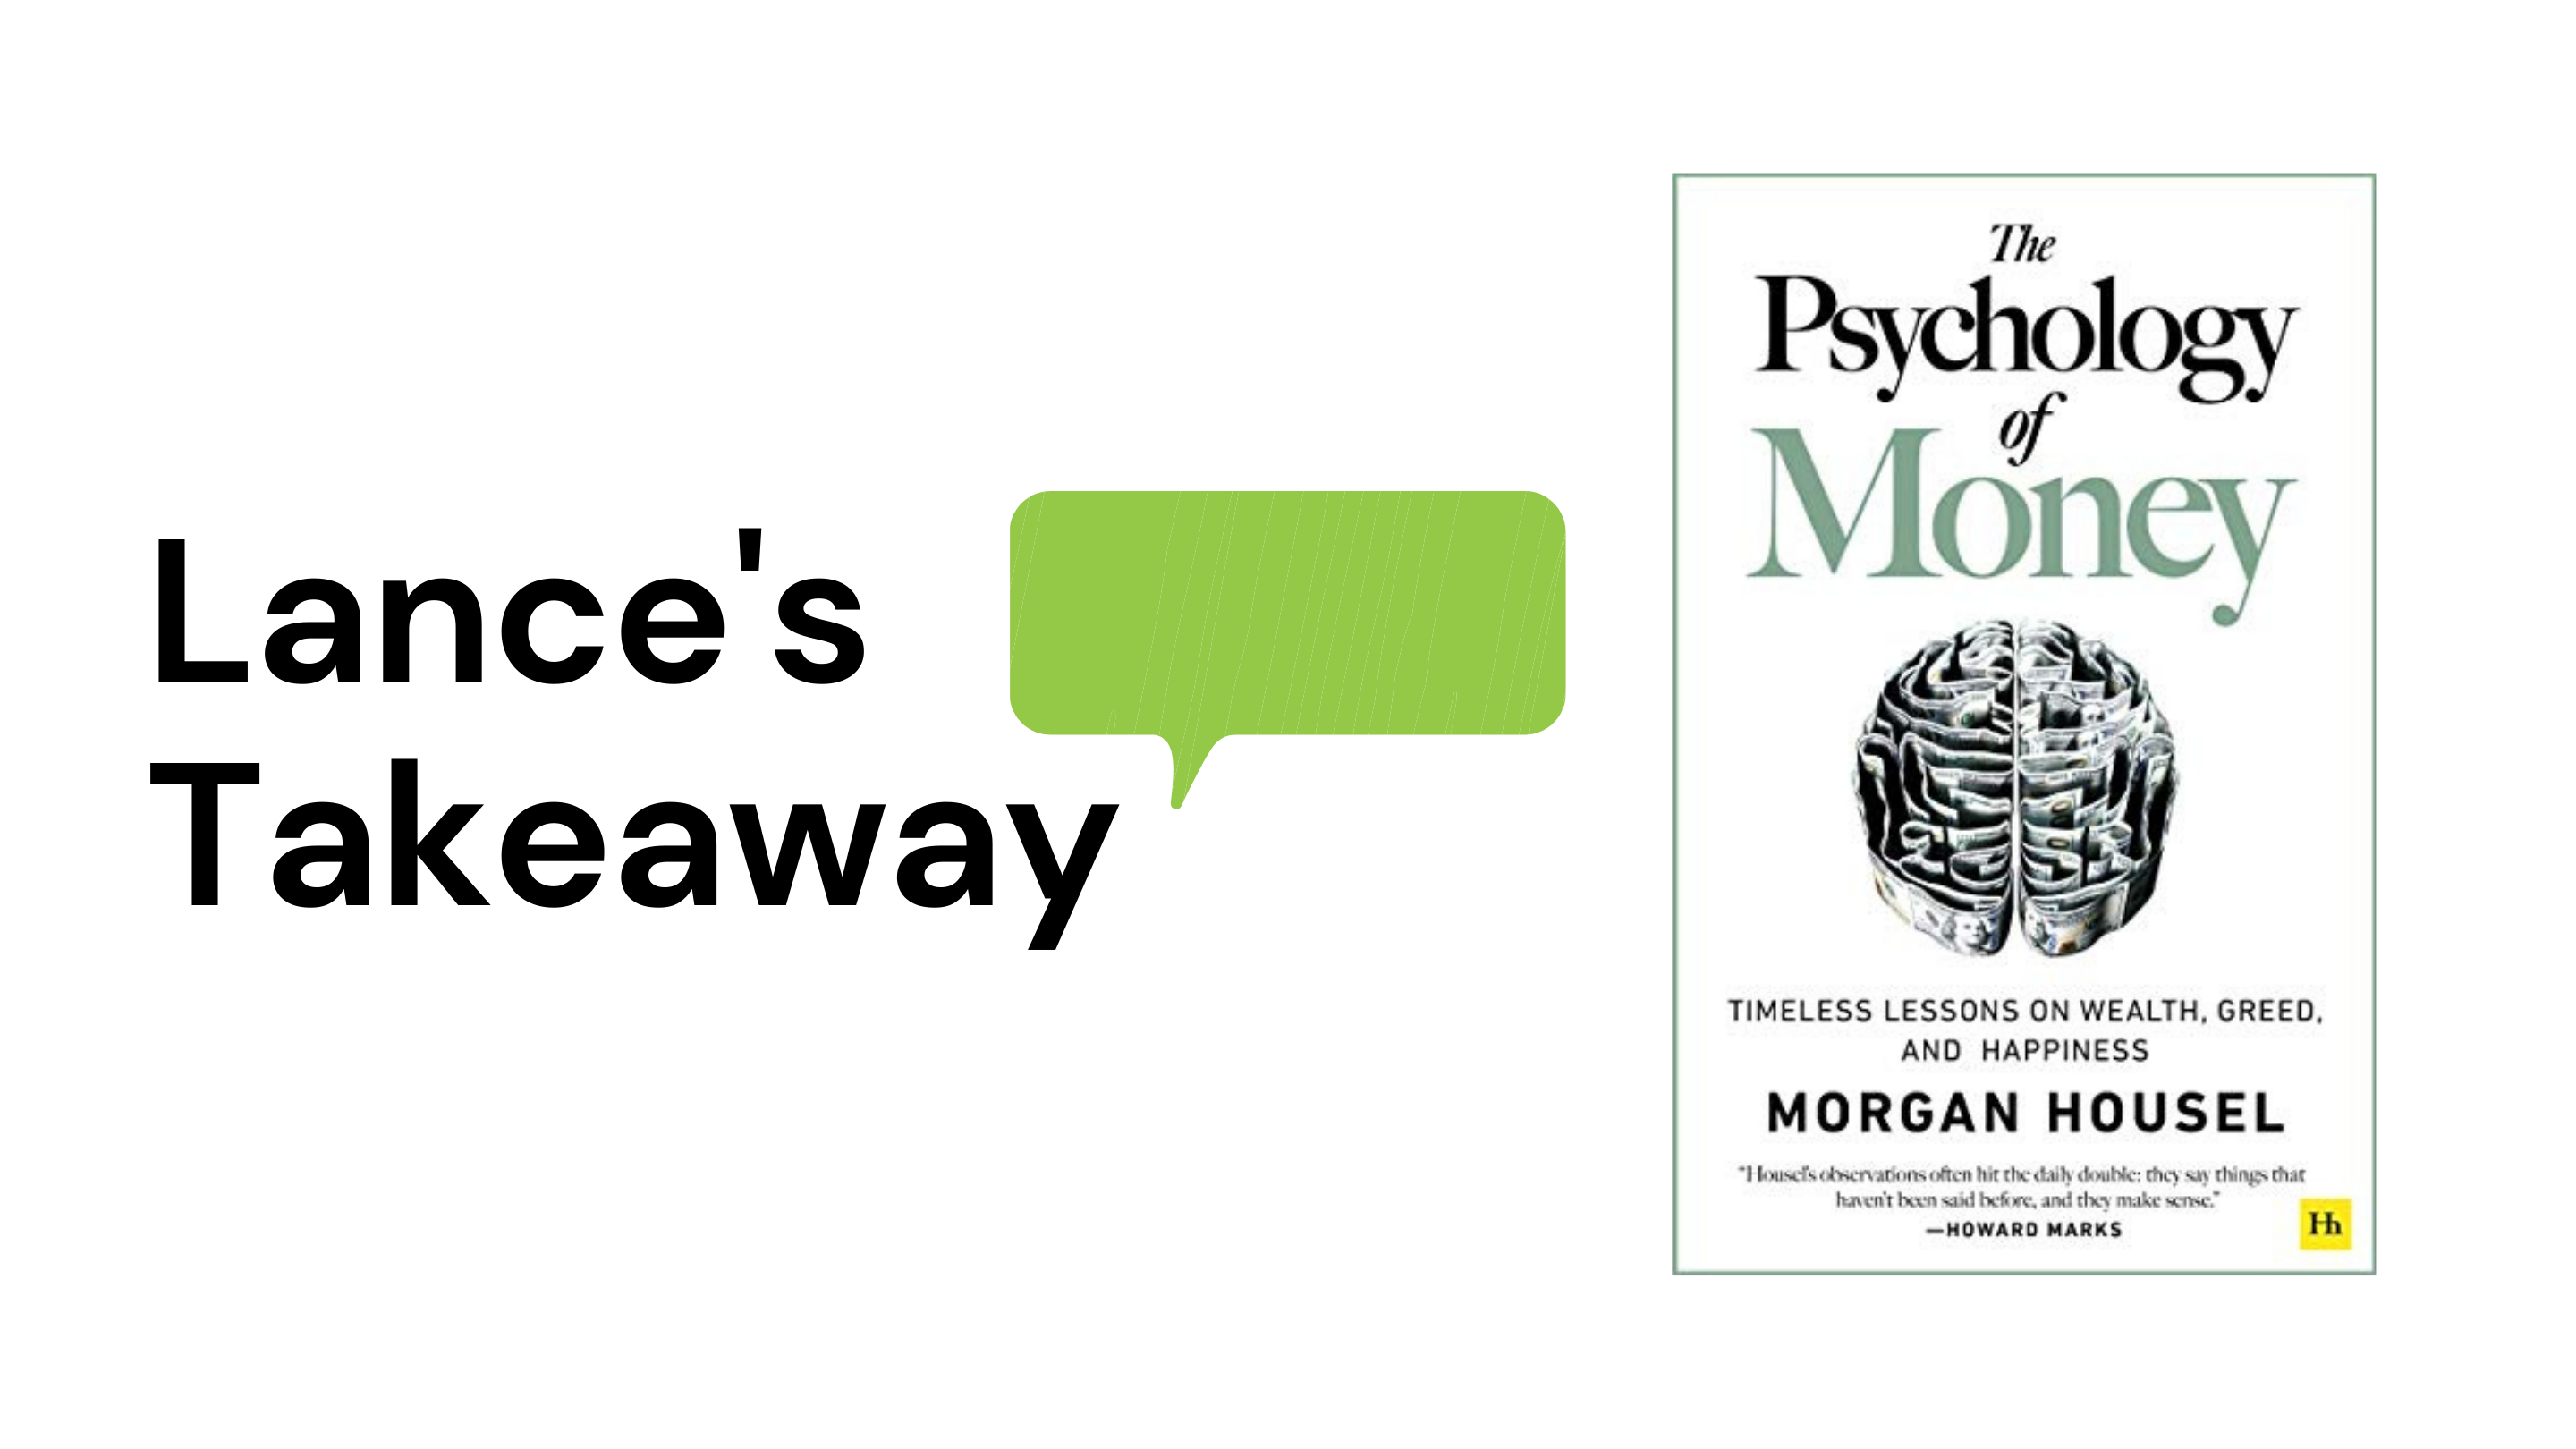 Lance's Takeaway from 'The Psychology of Money' by Morgan Housel Thumbnail